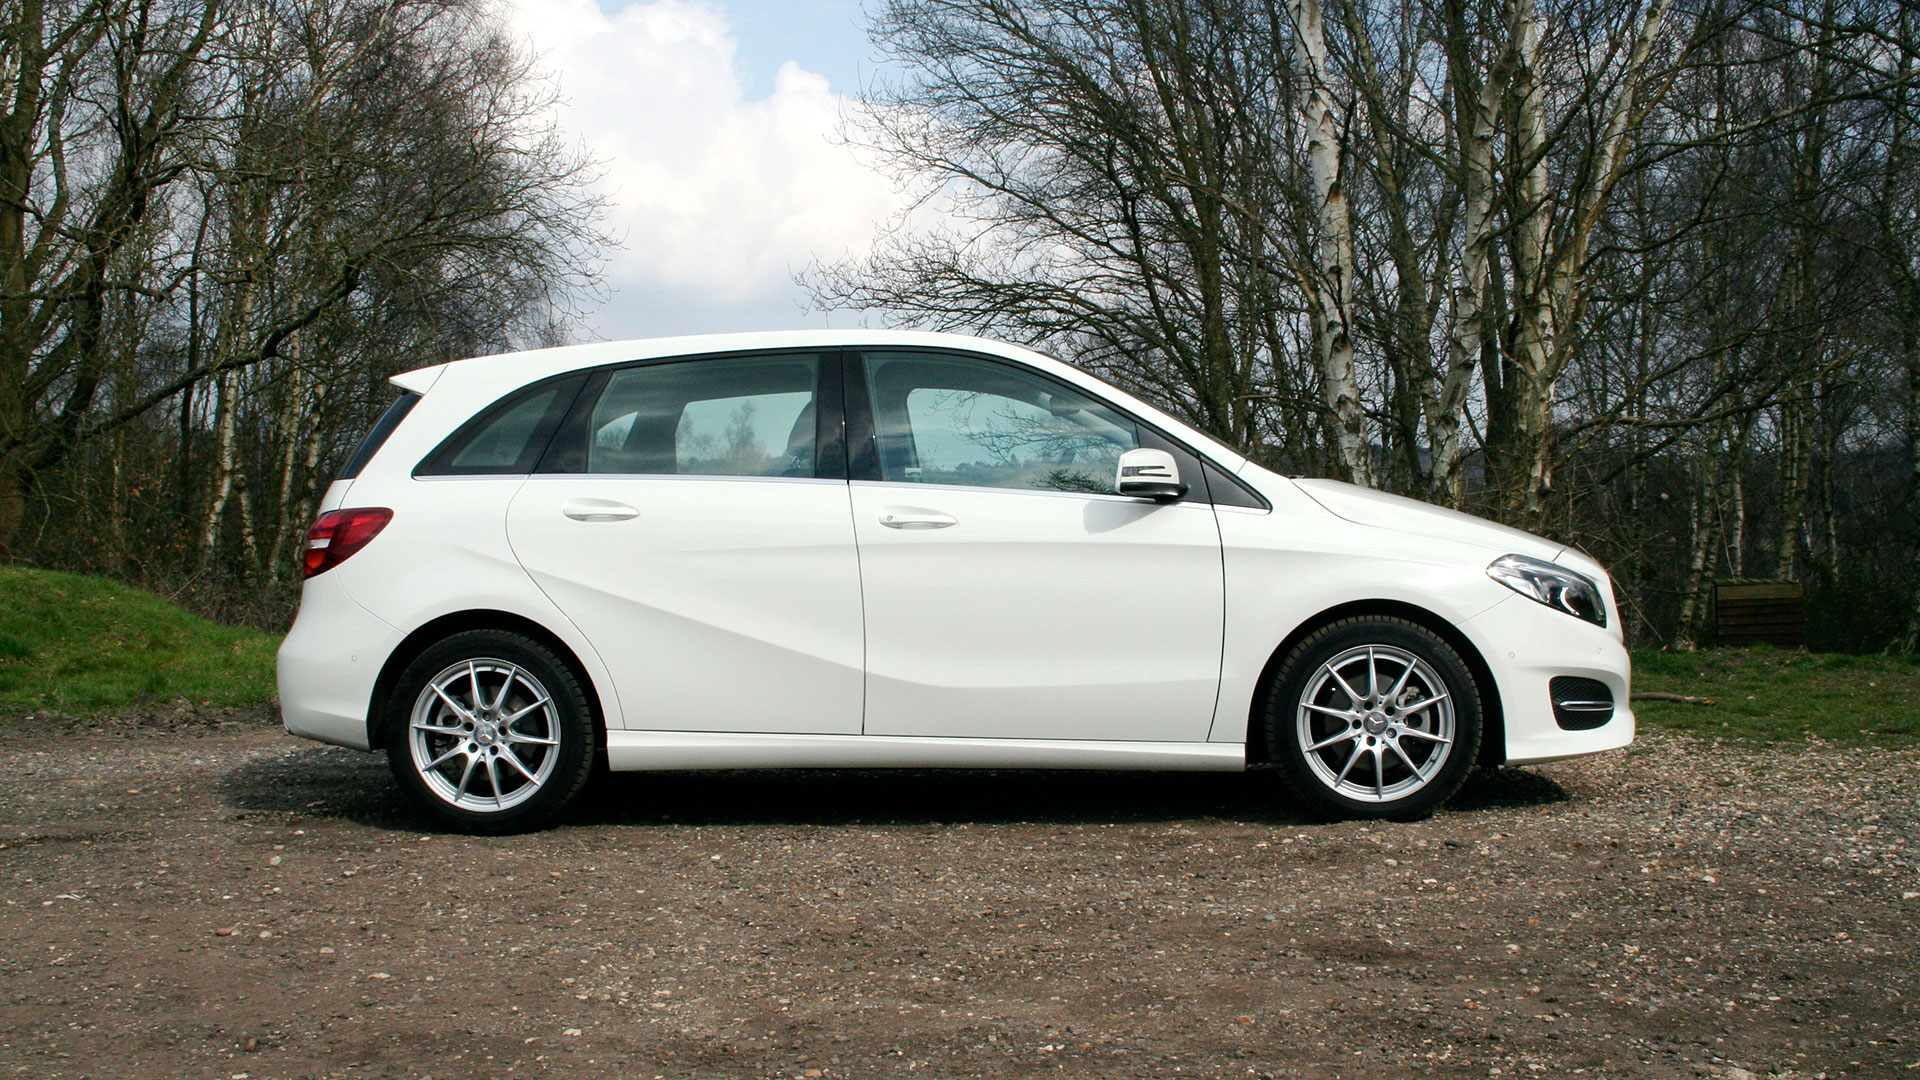 Mercedes Benz B Class Sport Used Cars For Sale On Auto Trader Uk